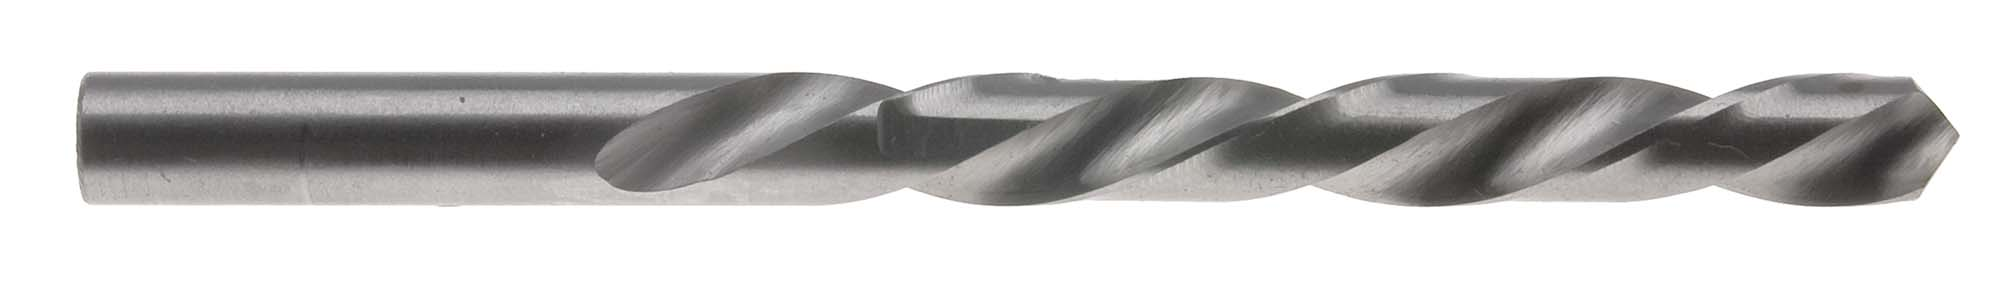 "E (.250"") Left Hand Jobber Length Drill Bit, High Speed Steel (Pack of 6)"